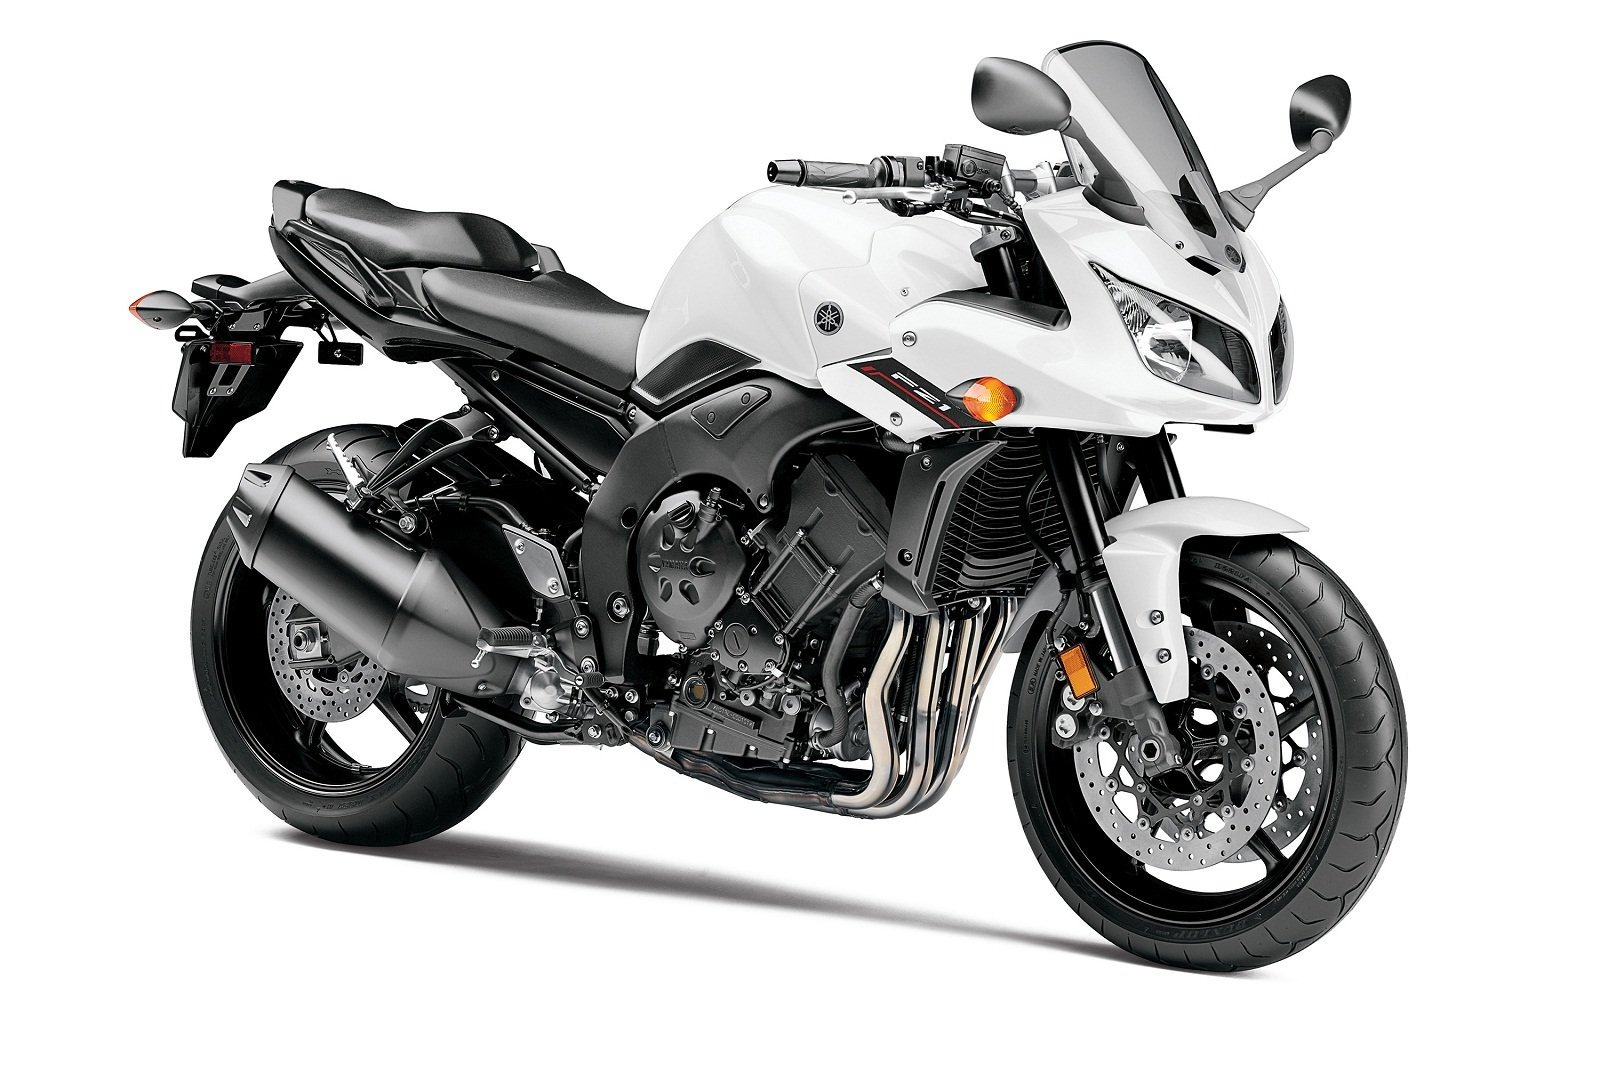 Yamaha fz1 photo - 9